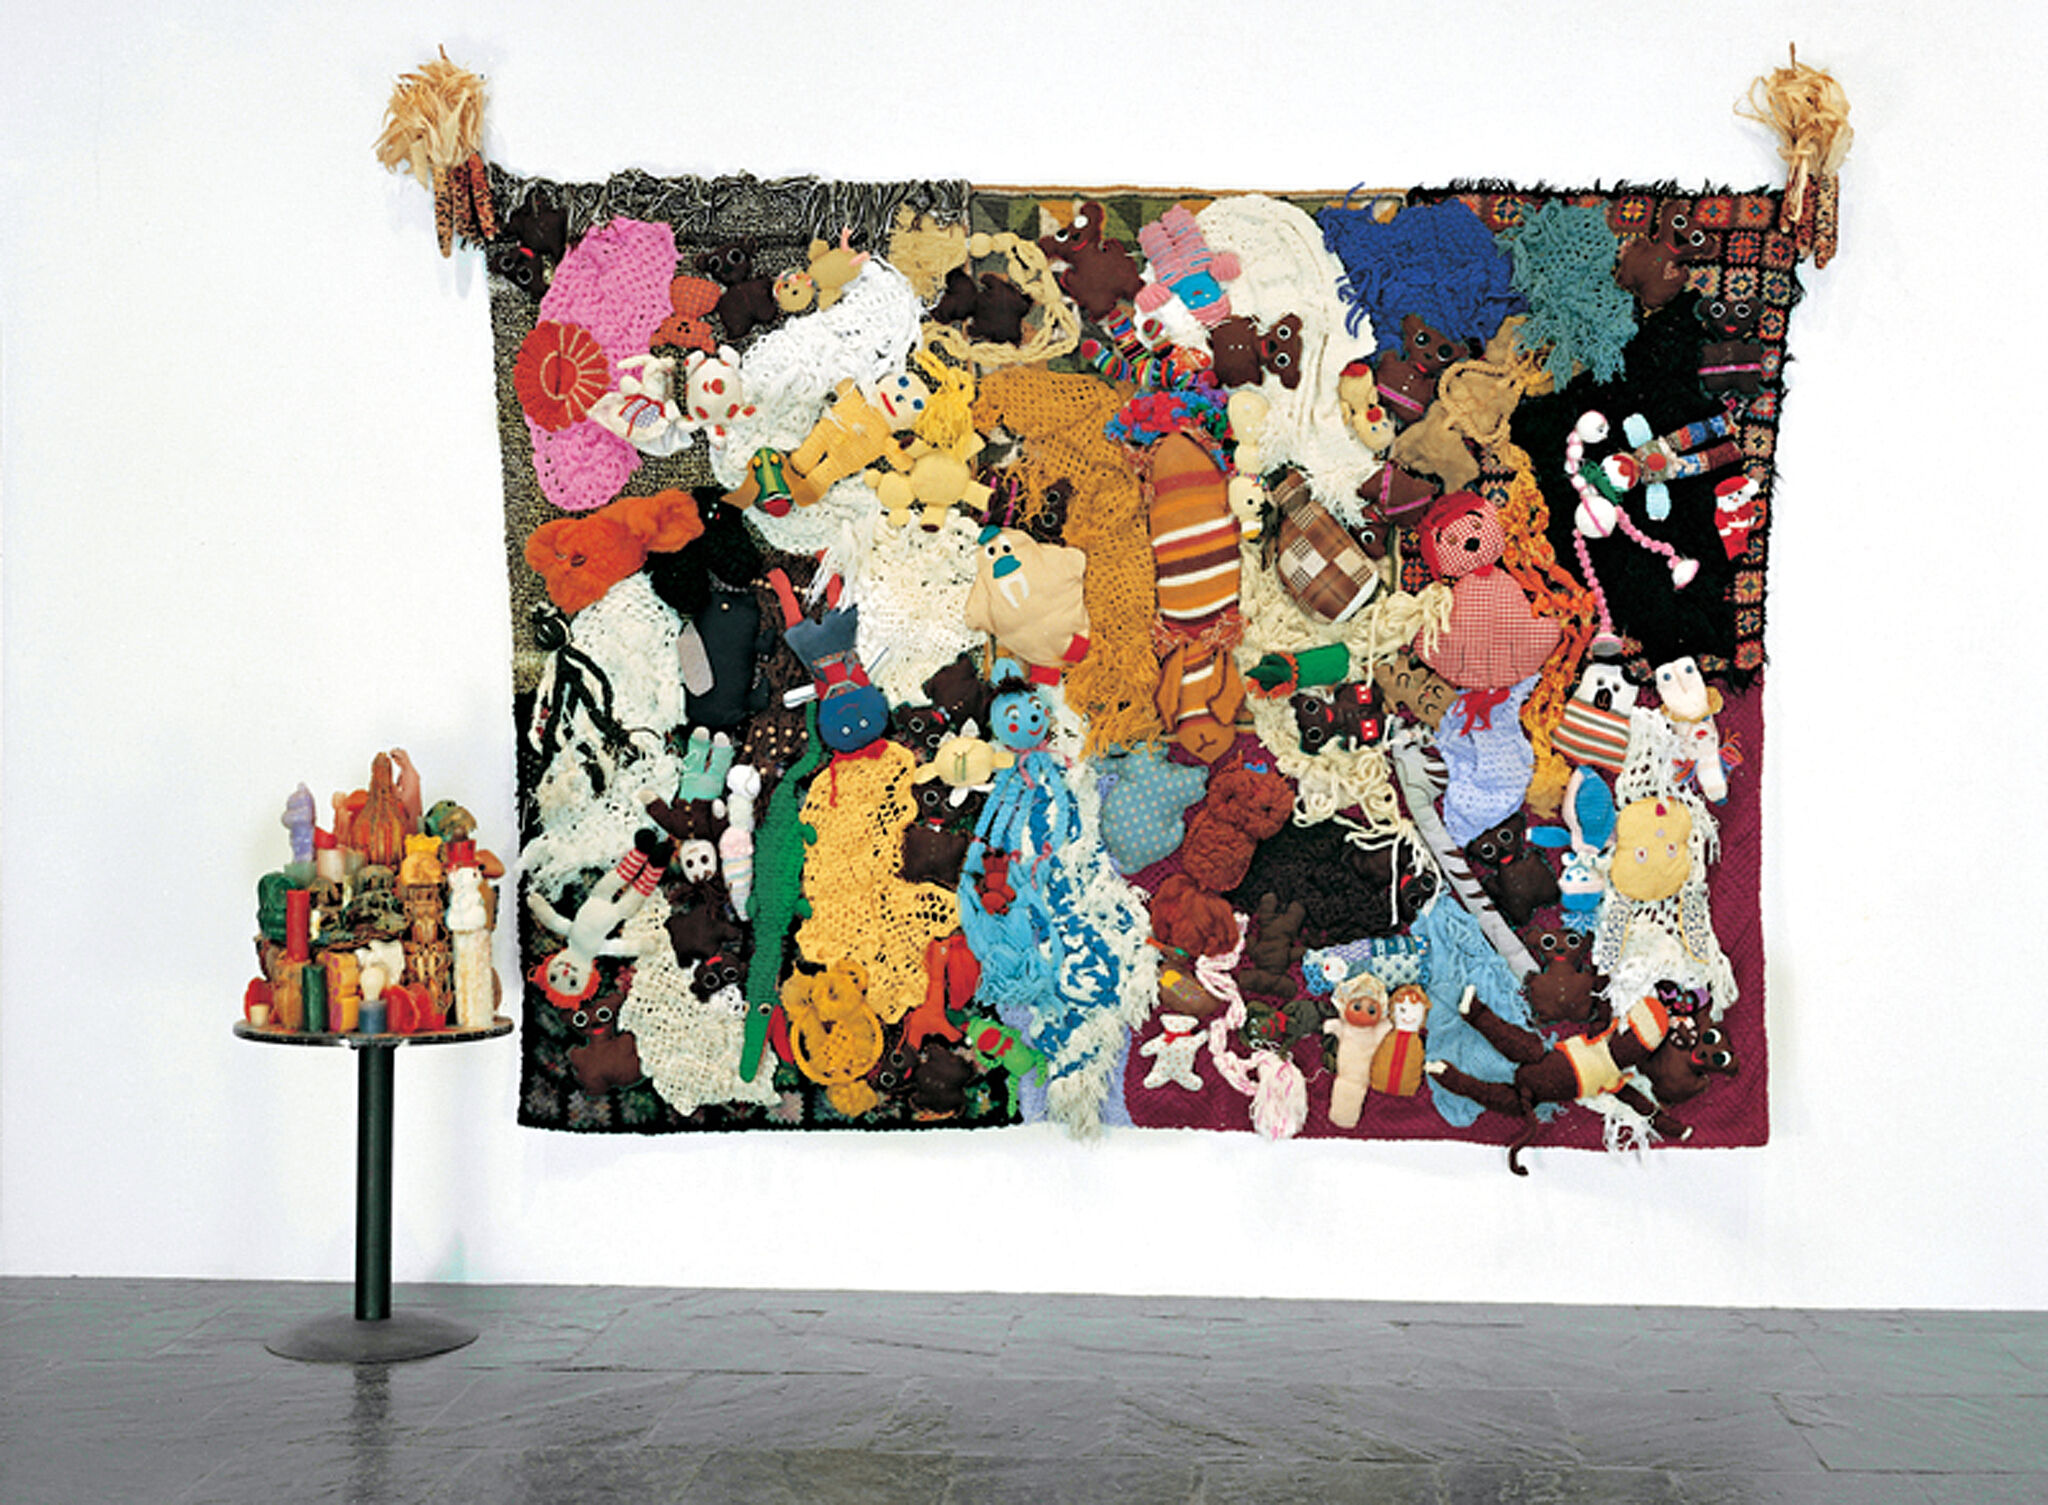 A wall with a sculpture made of stuffed animals and a table with a sculpture made of wax candles.